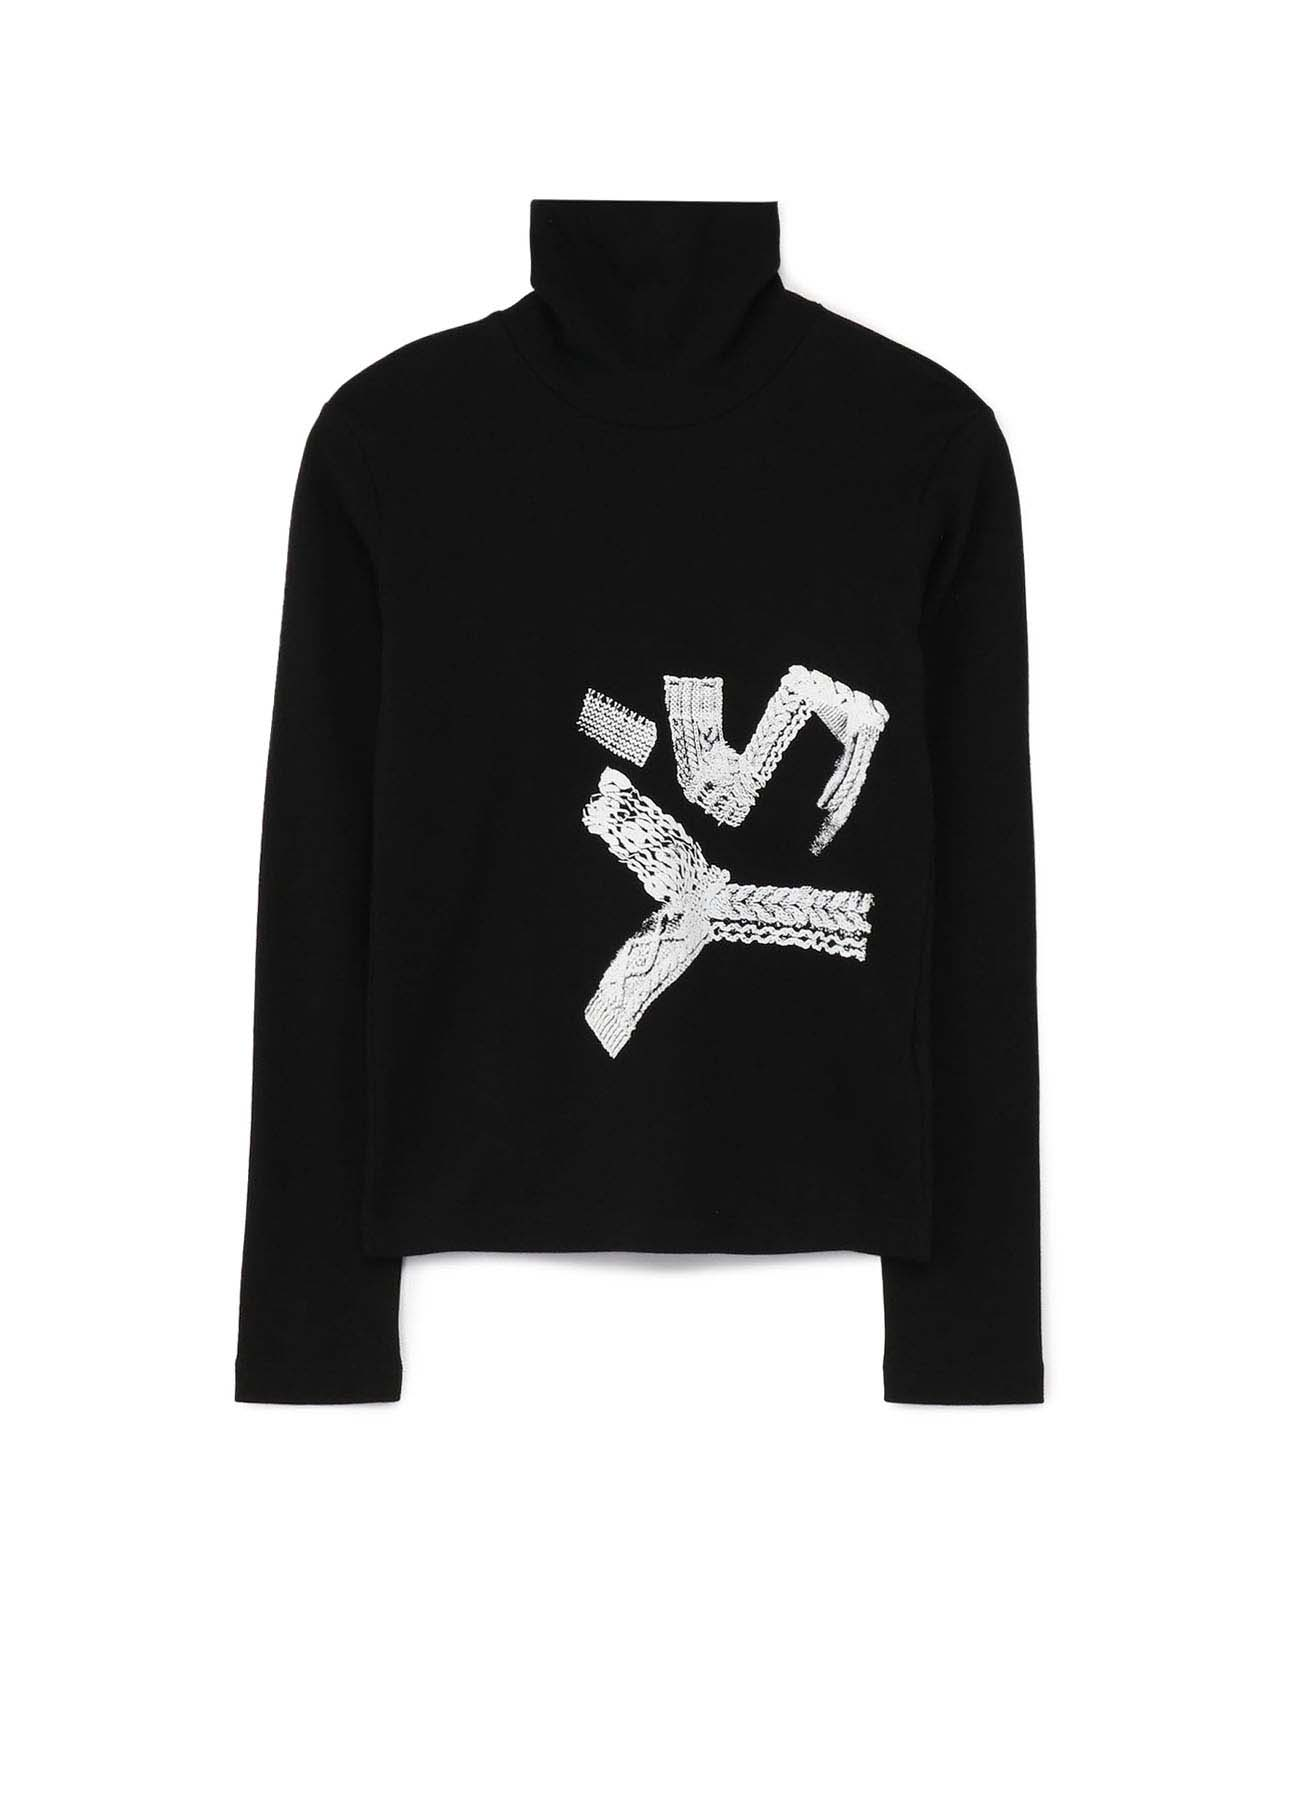 SMOOTH KNIT Y's FOAM PRINT HIGH NECK LONG SLEEVE T